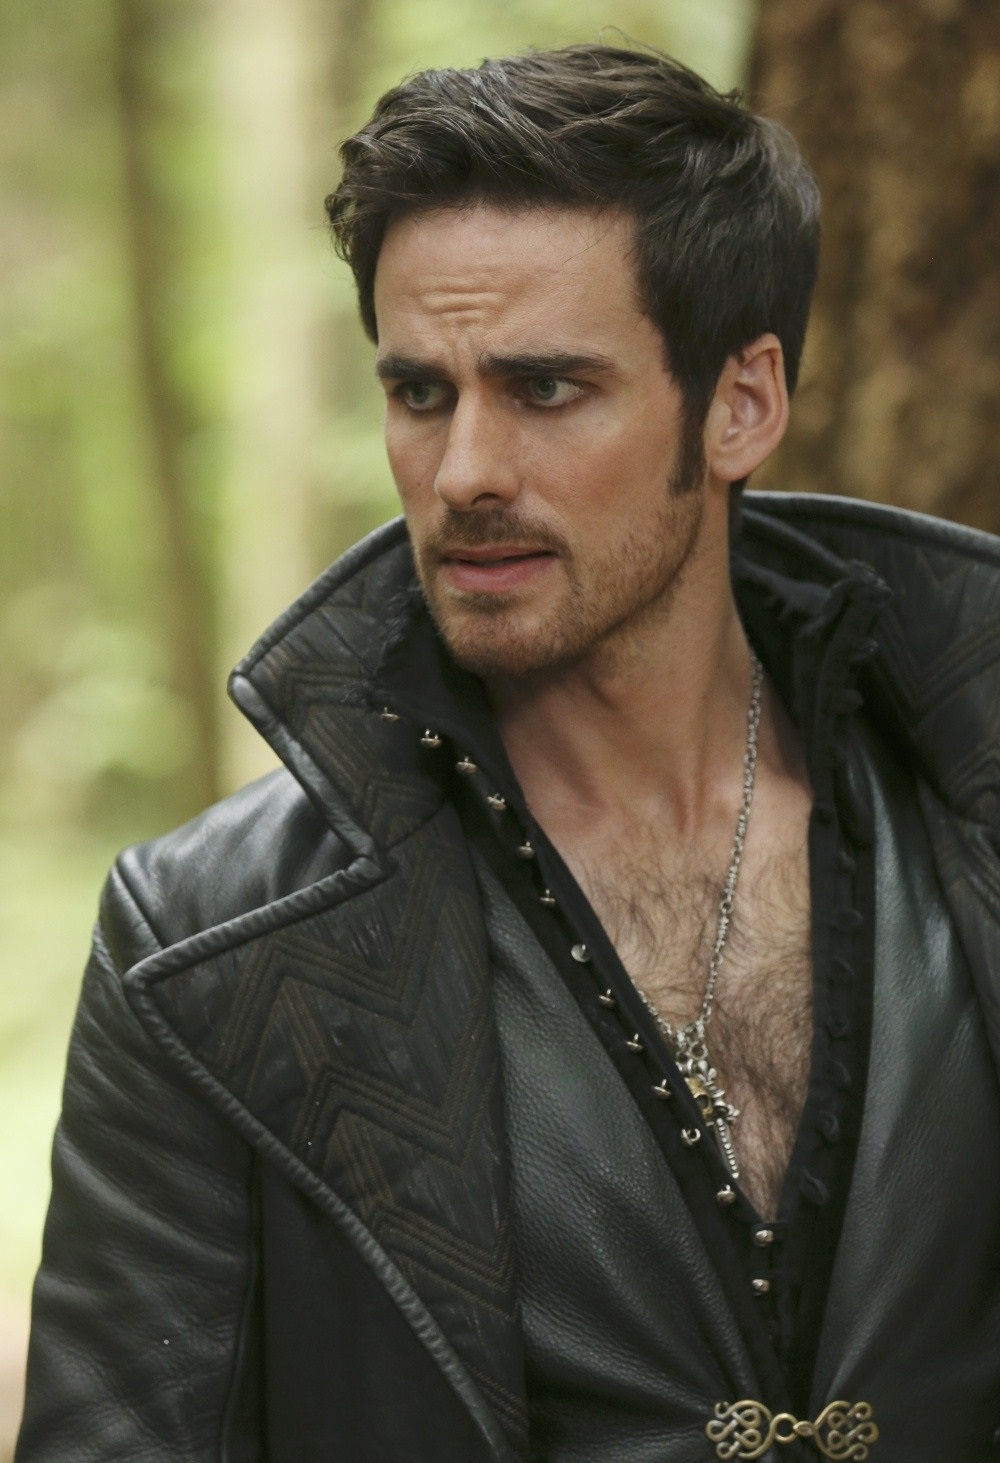 colin odonoghue photo 2 of 94 pics wallpaper photo